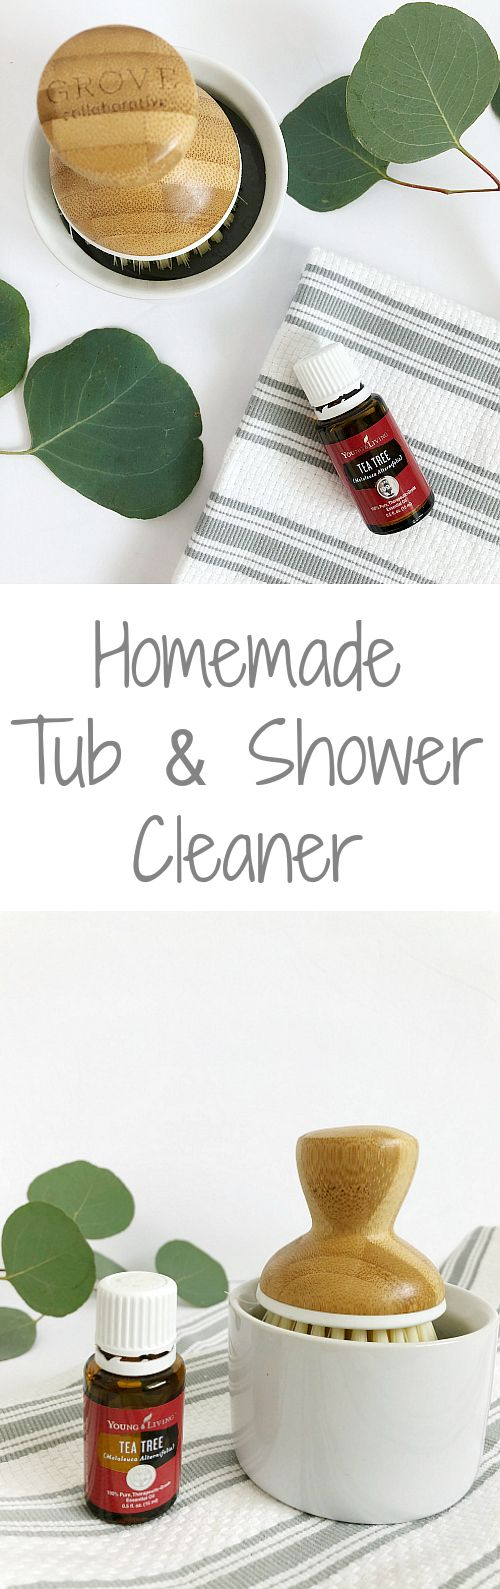 Great idea to incorporate Tea Tree Essential Oil into this DIY Shower Cleaner! #teatree #essentialoils #showercleaner